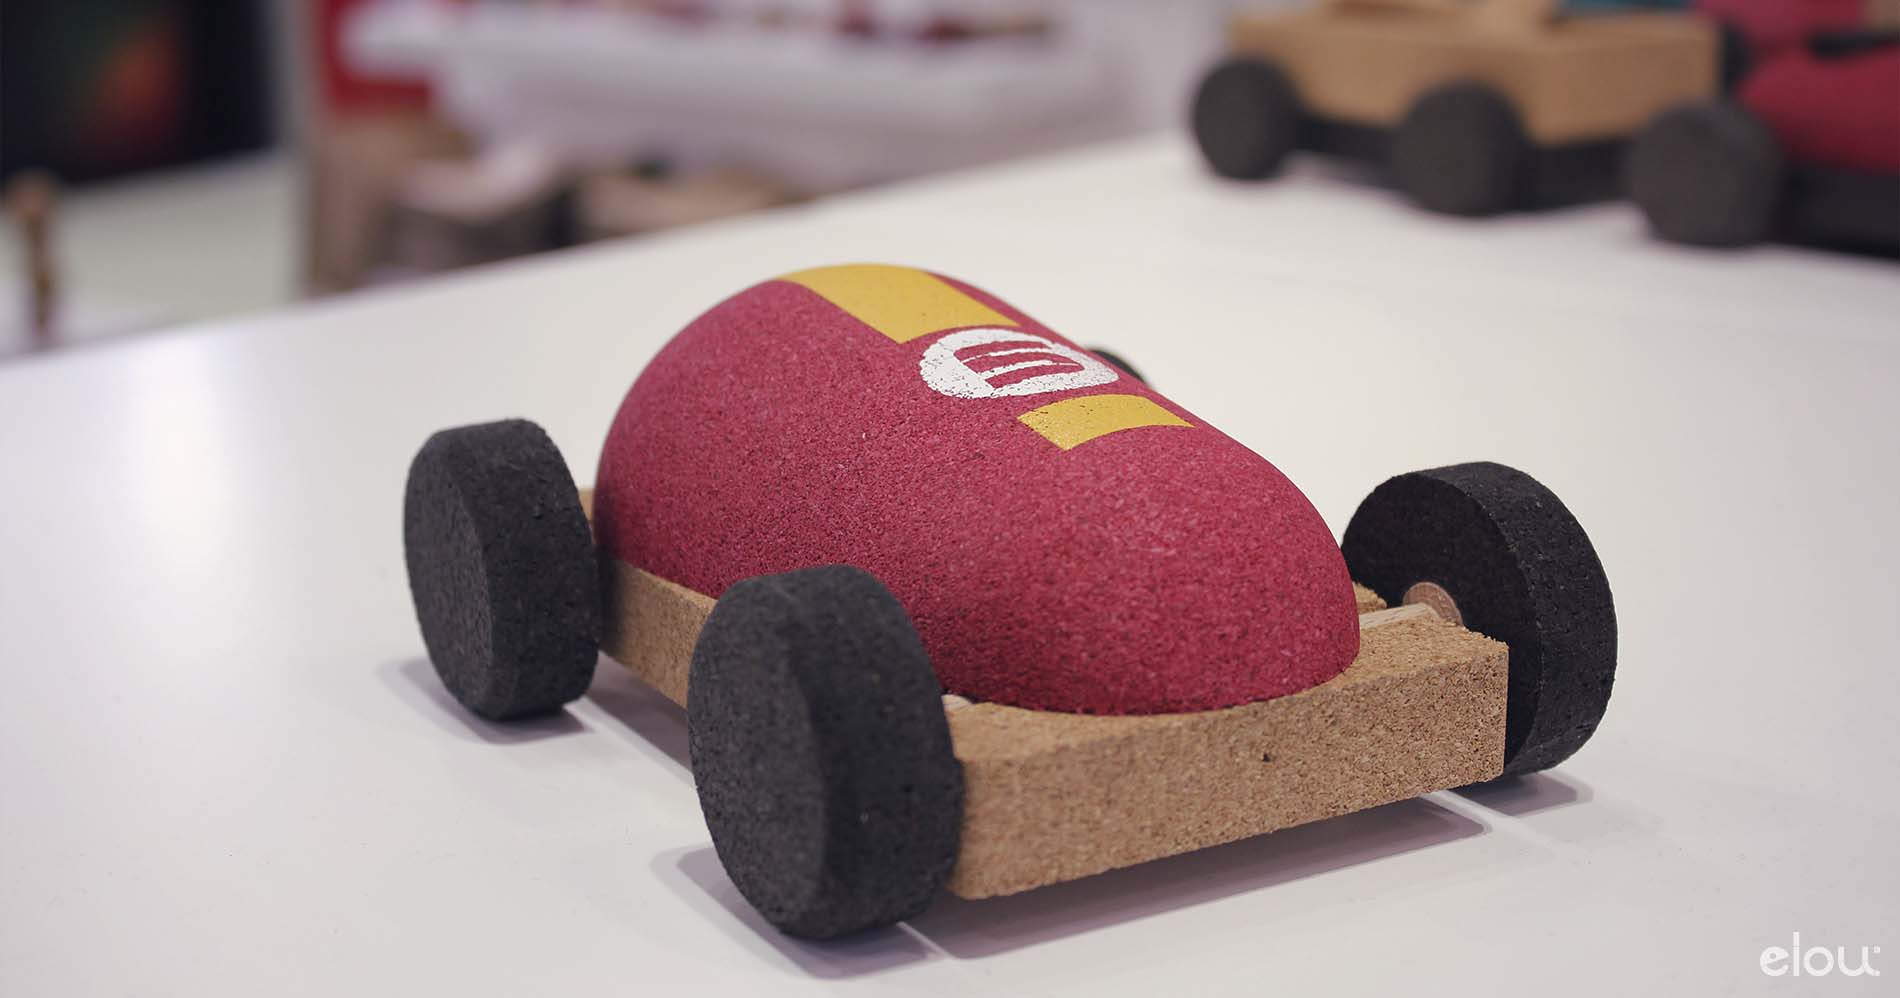 Sustainable toys made of cork